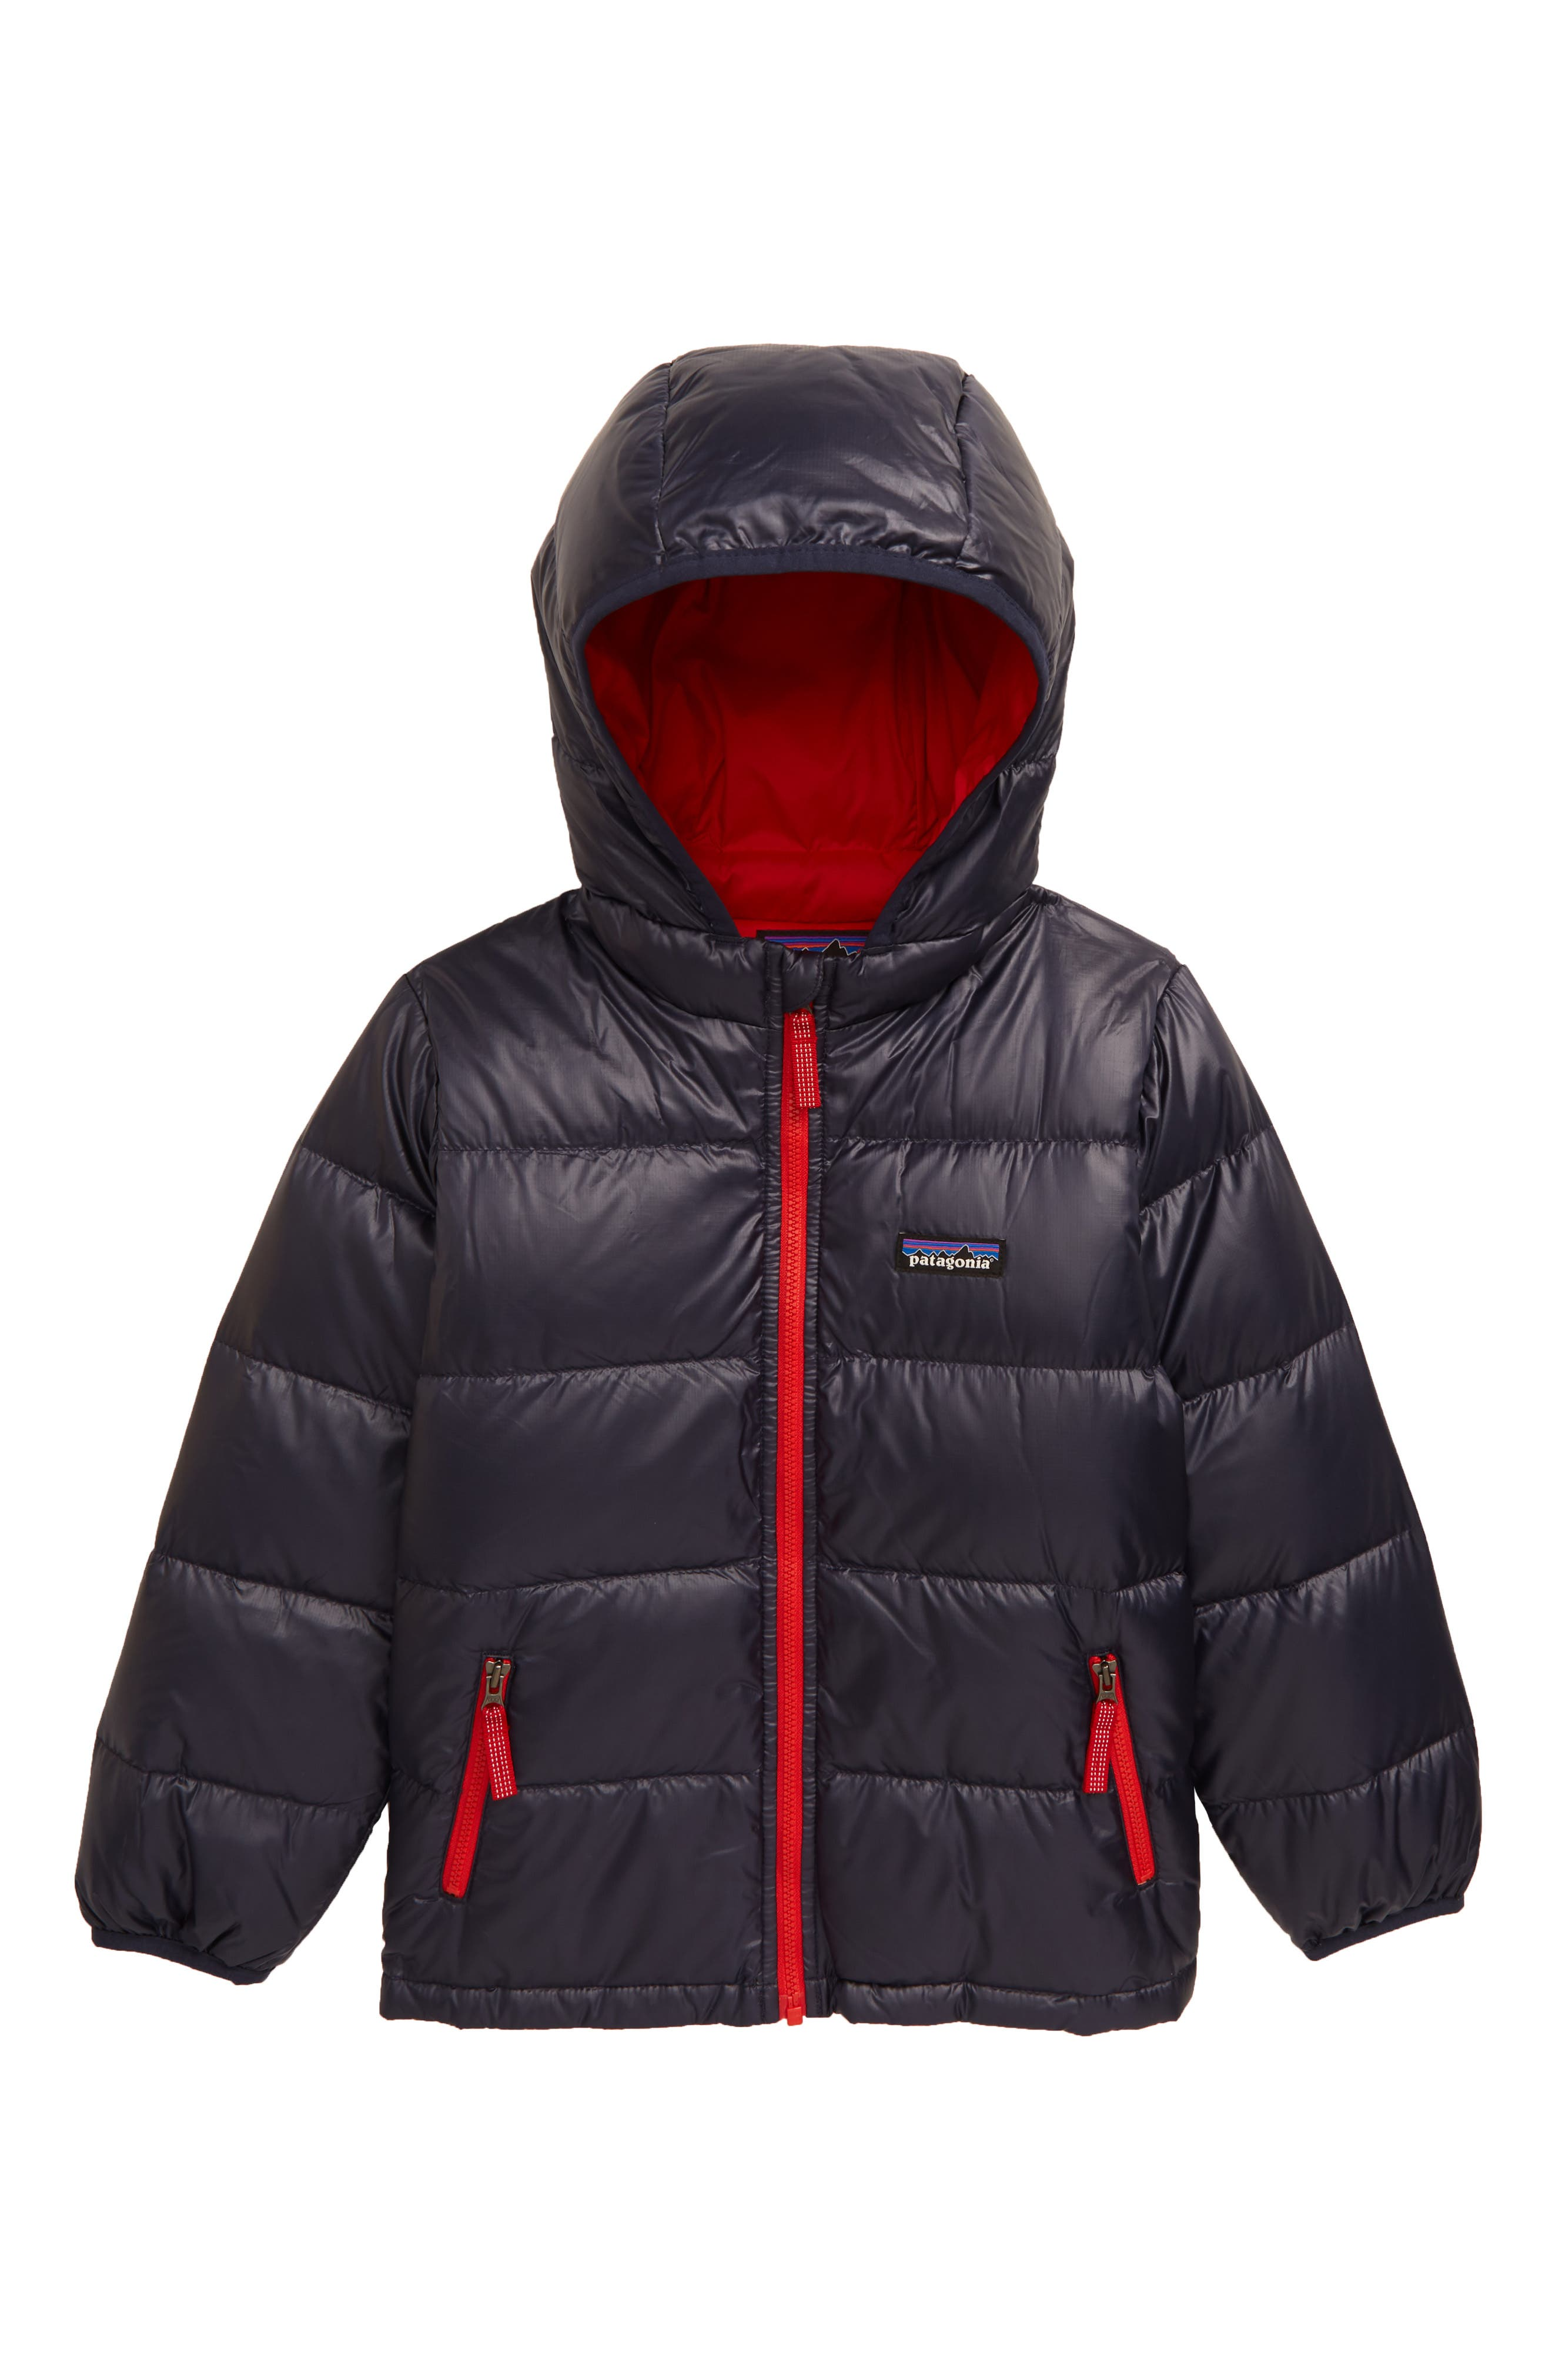 Brand New DL Project 86 Boys Bomber Winter Jacket Kids Casual Zip Up Hooded Coat